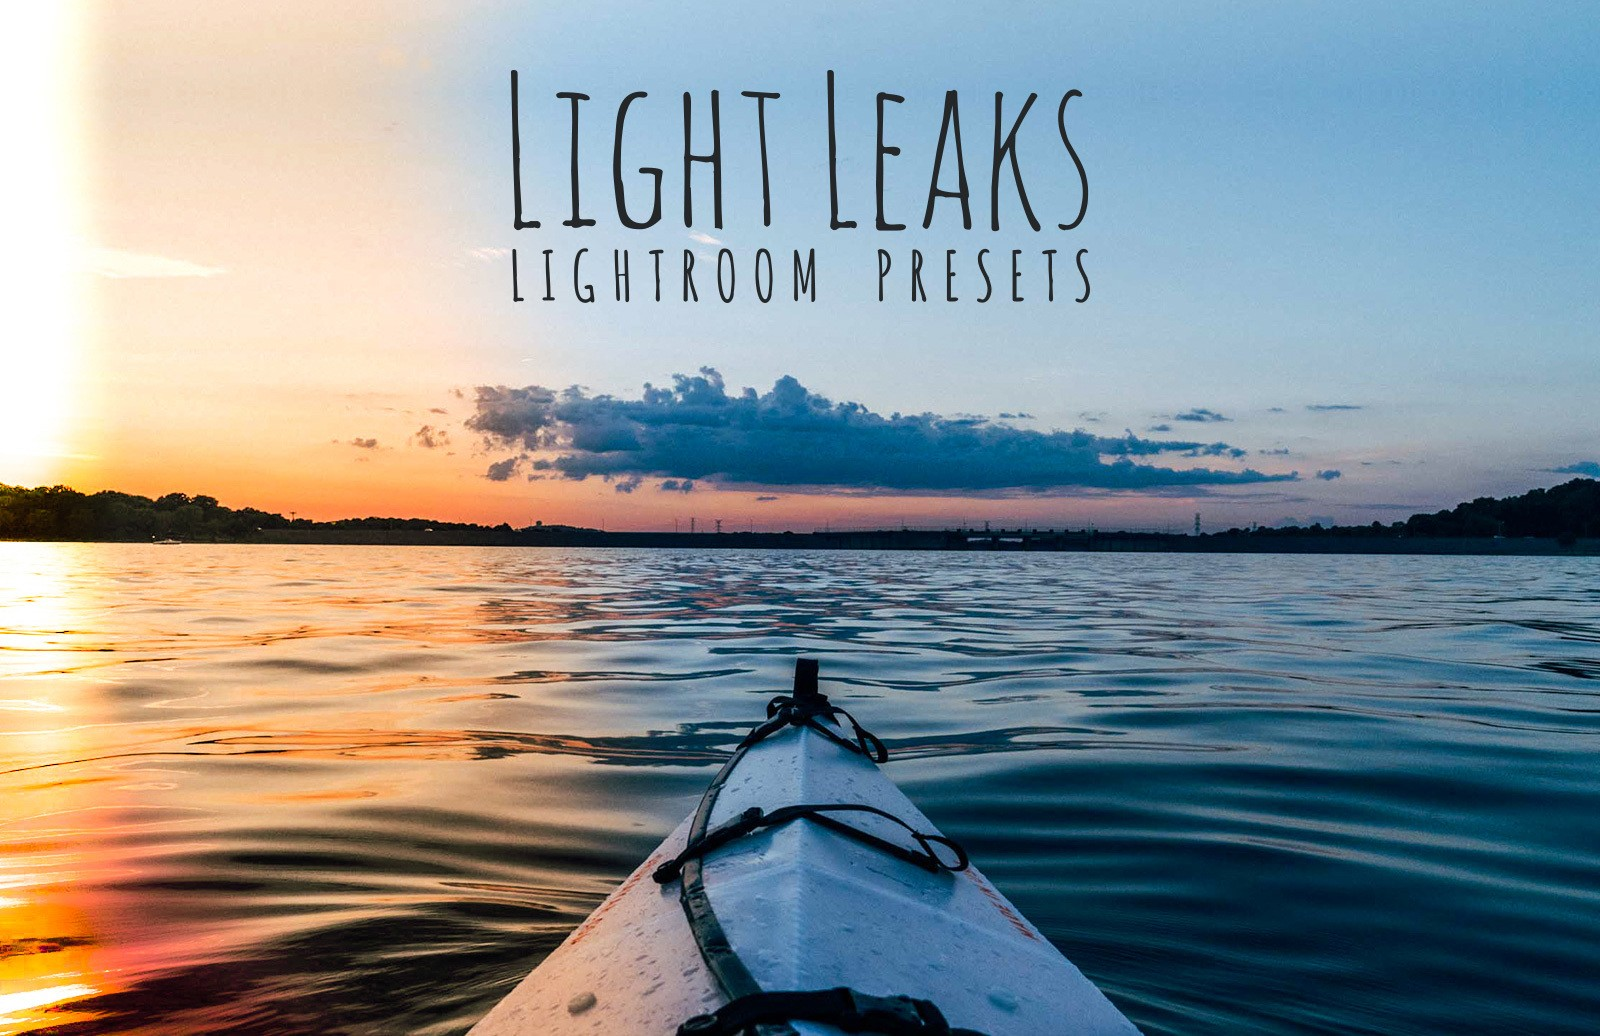 Light Leaks Lightroom Presets 1